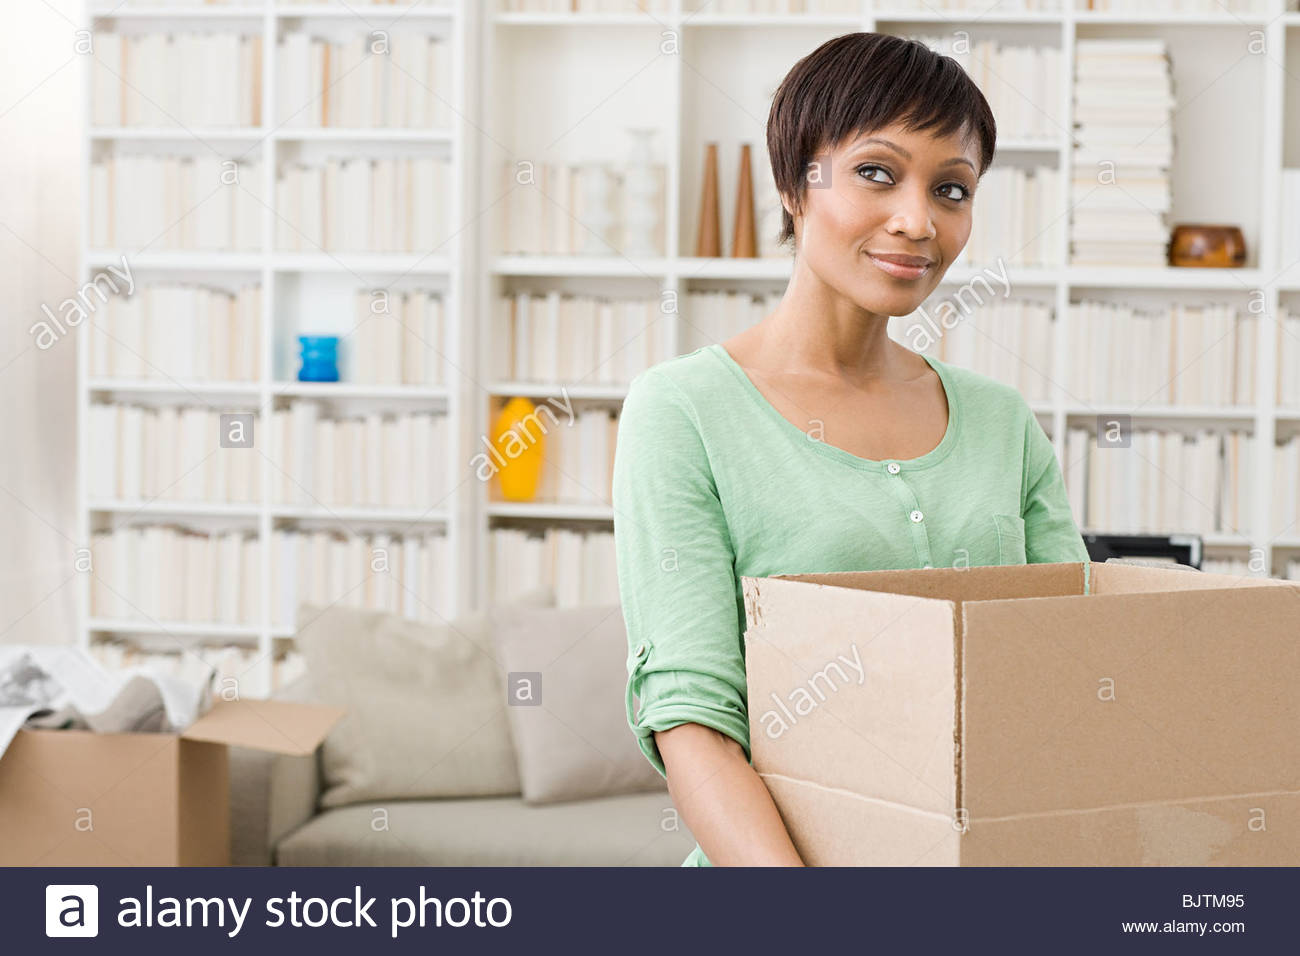 Woman with cardboard box - Stock Image